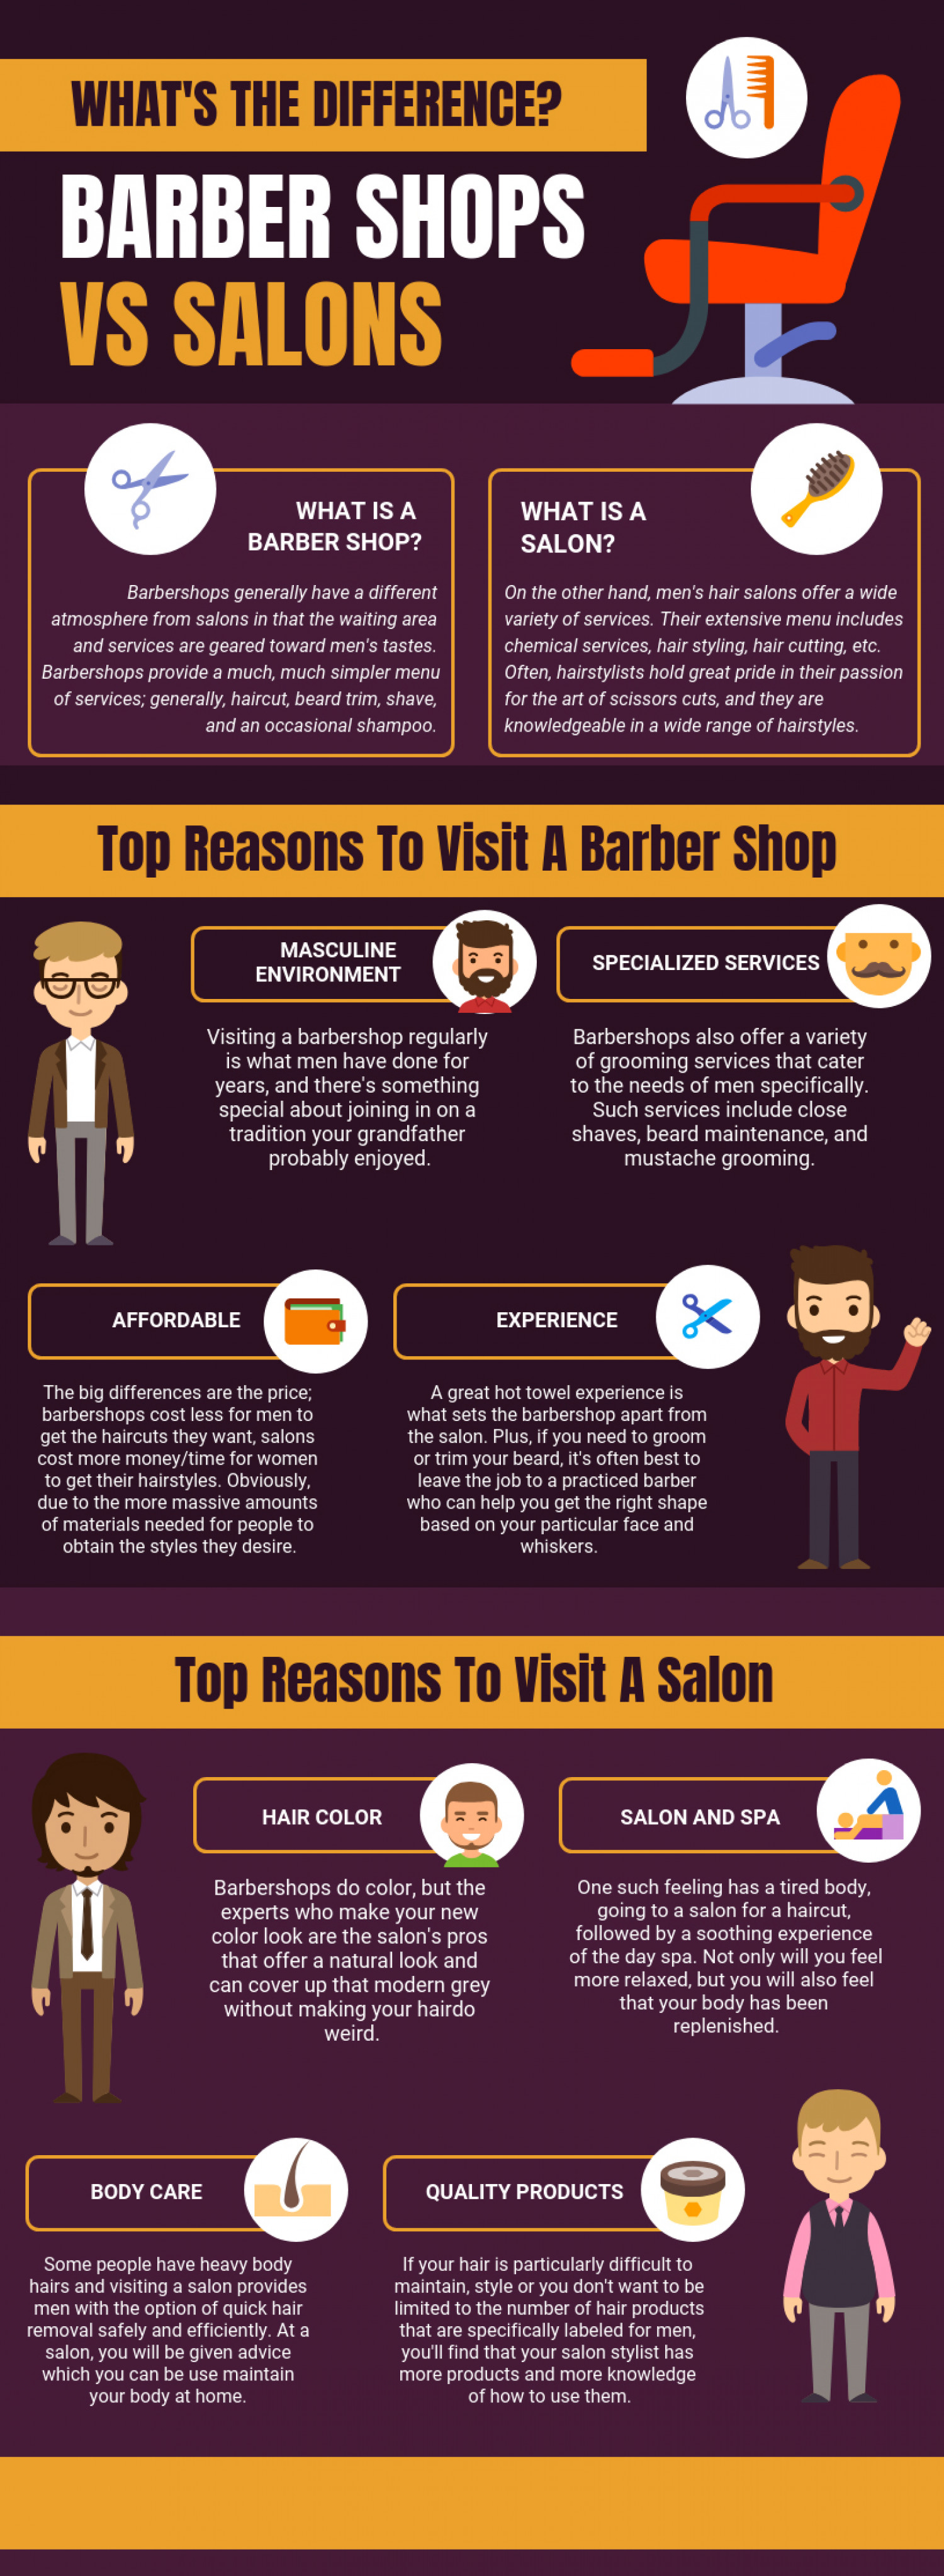 What's The Difference? Barber Shops vs Salons